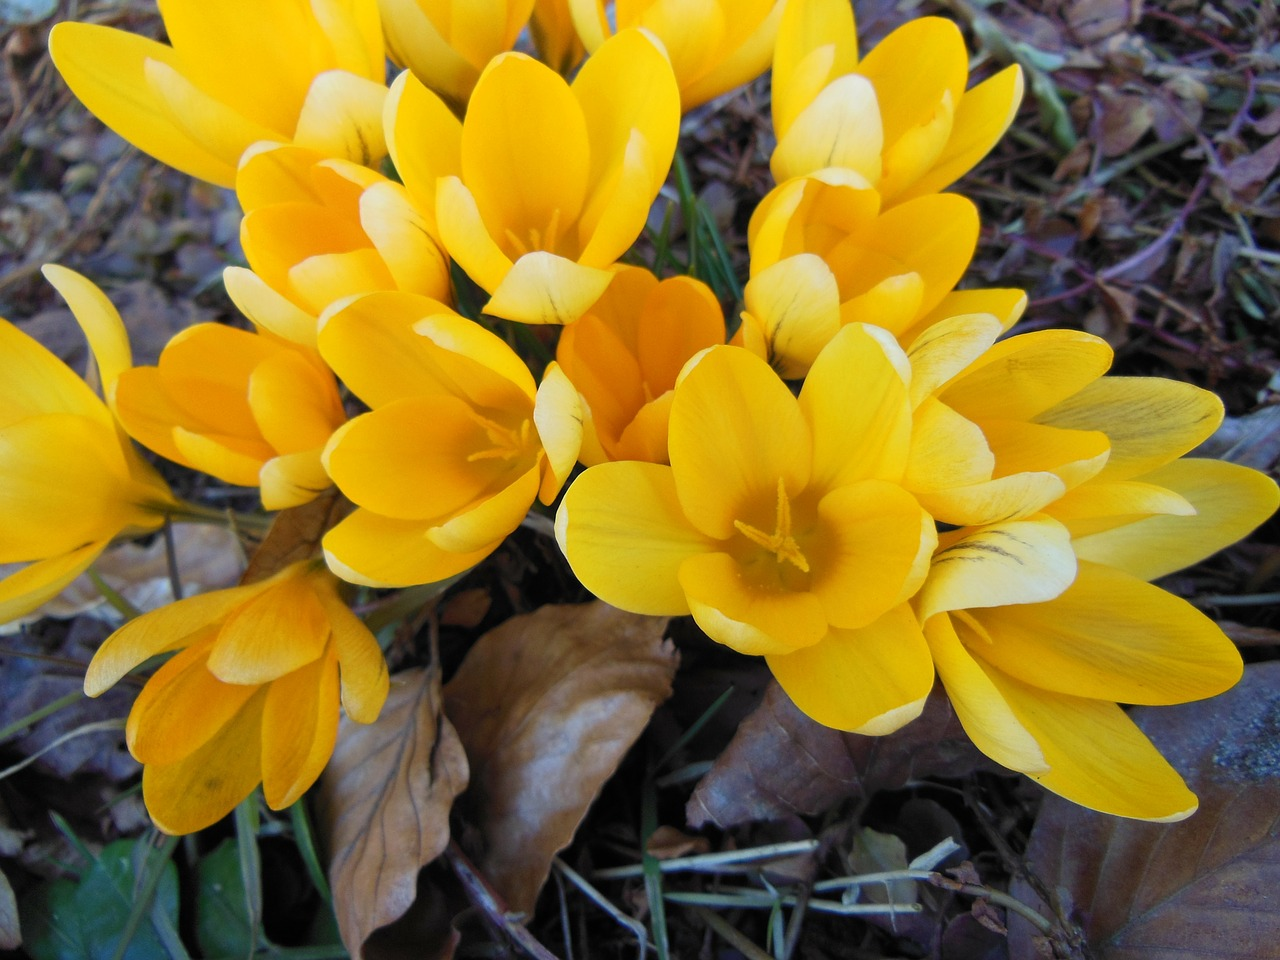 withered foliage yellow crocus harbingers of spring free photo